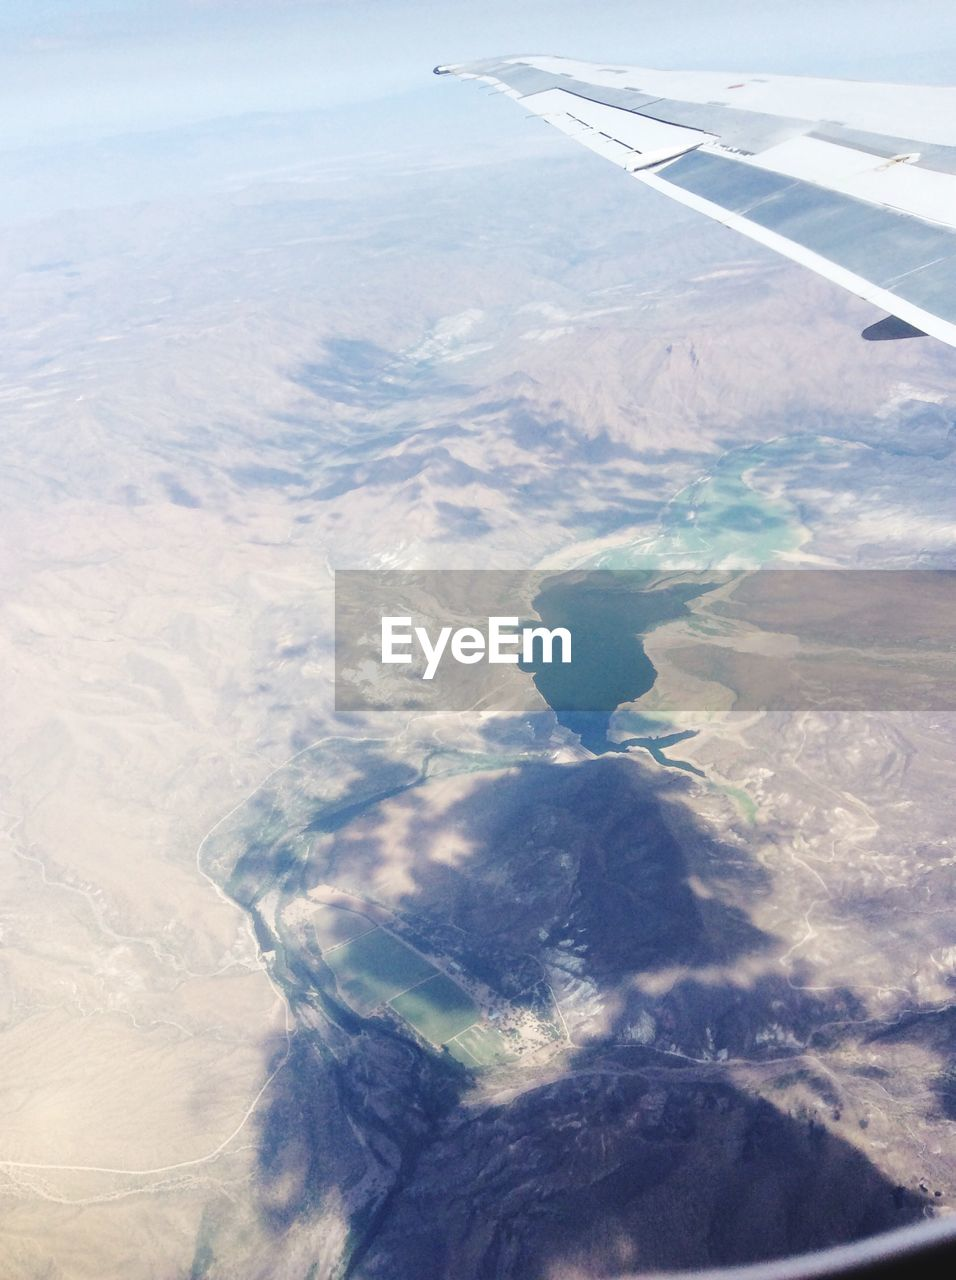 aerial view, airplane, airplane wing, nature, transportation, landscape, journey, scenics, flying, beauty in nature, mid-air, travel, aircraft wing, air vehicle, no people, vehicle part, mode of transport, day, outdoors, sea, view into land, sky, water, mountain, the natural world